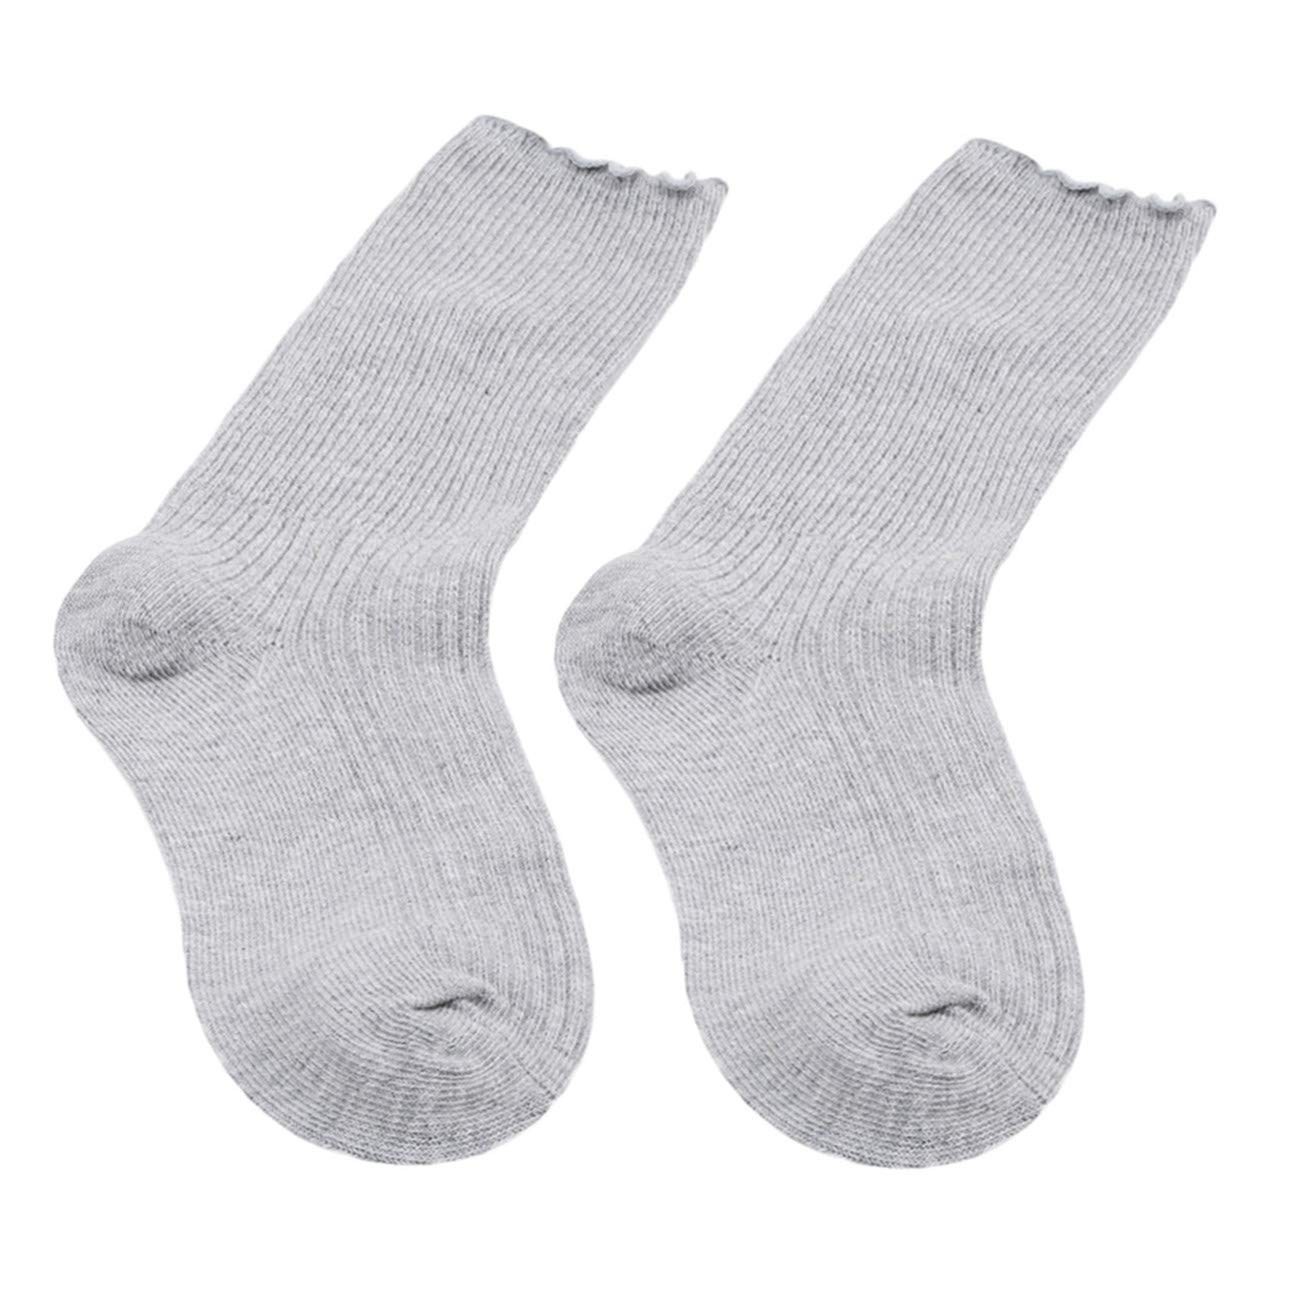 Bigsweety 1pc Children Socks Kid Girls Cute Cotton Soft Crew Ankle Socks (Gray) TangRen